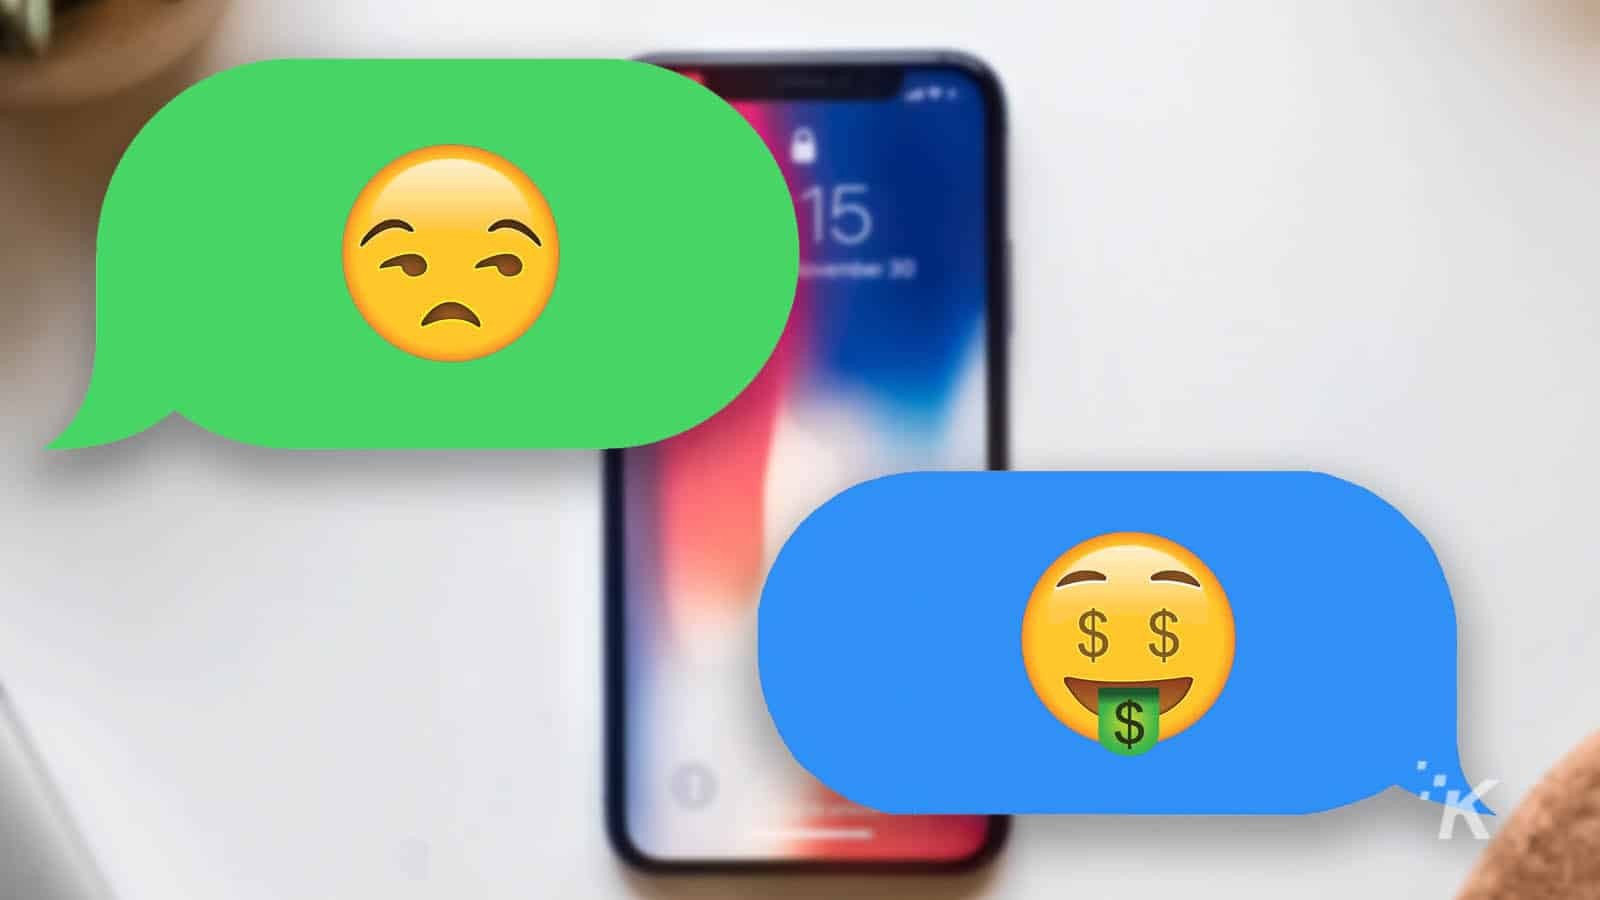 imessage convo between apple and android